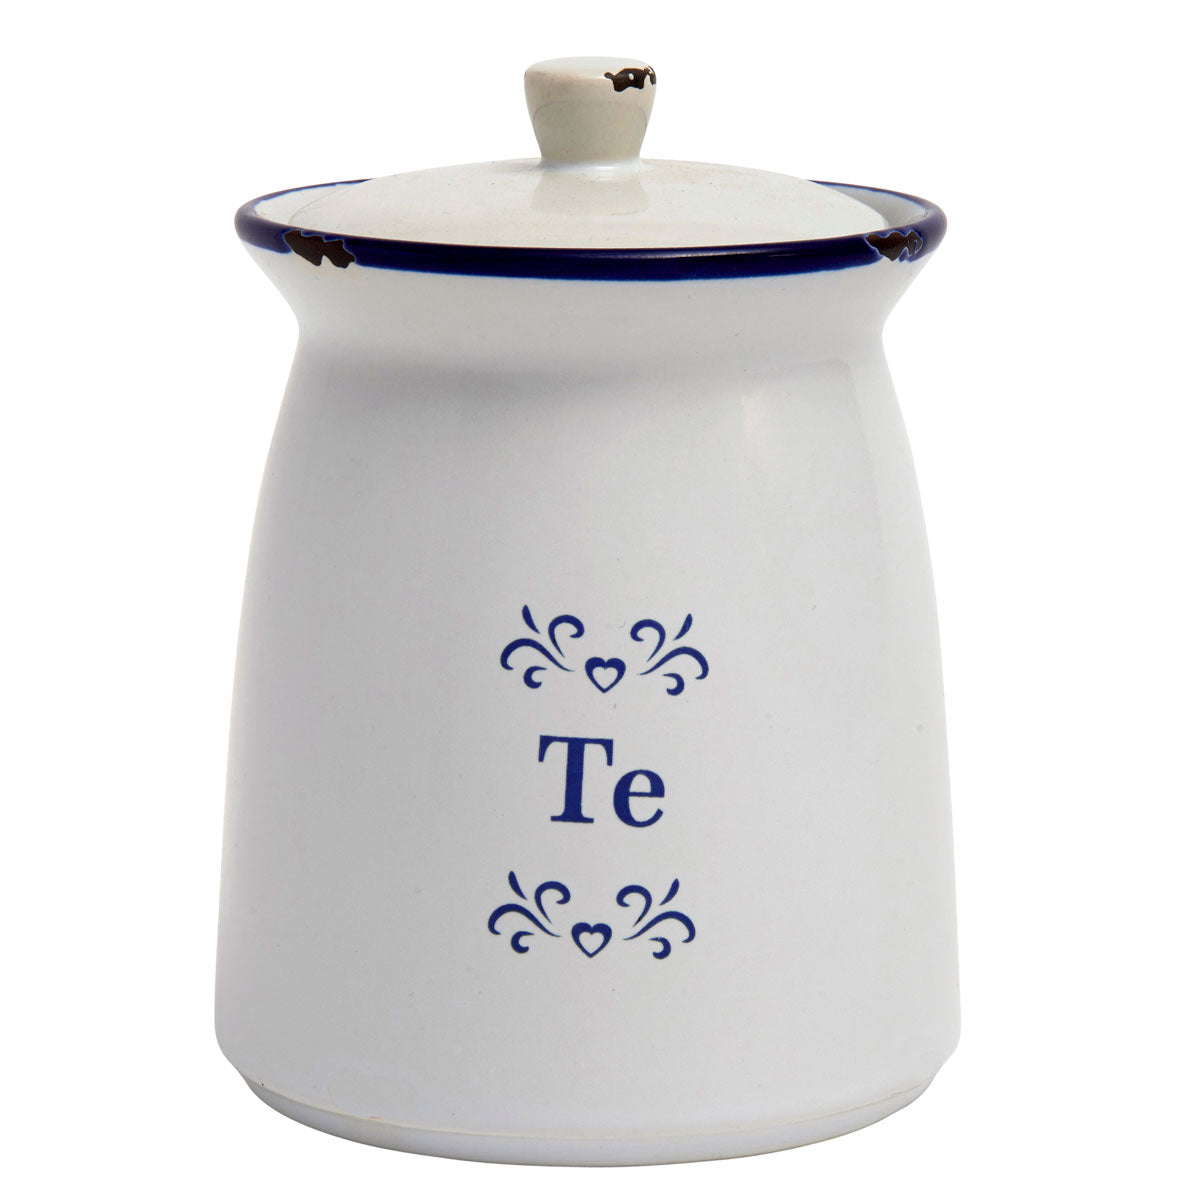 Storage Jar - Blue & White Ceramic - Te - Tea